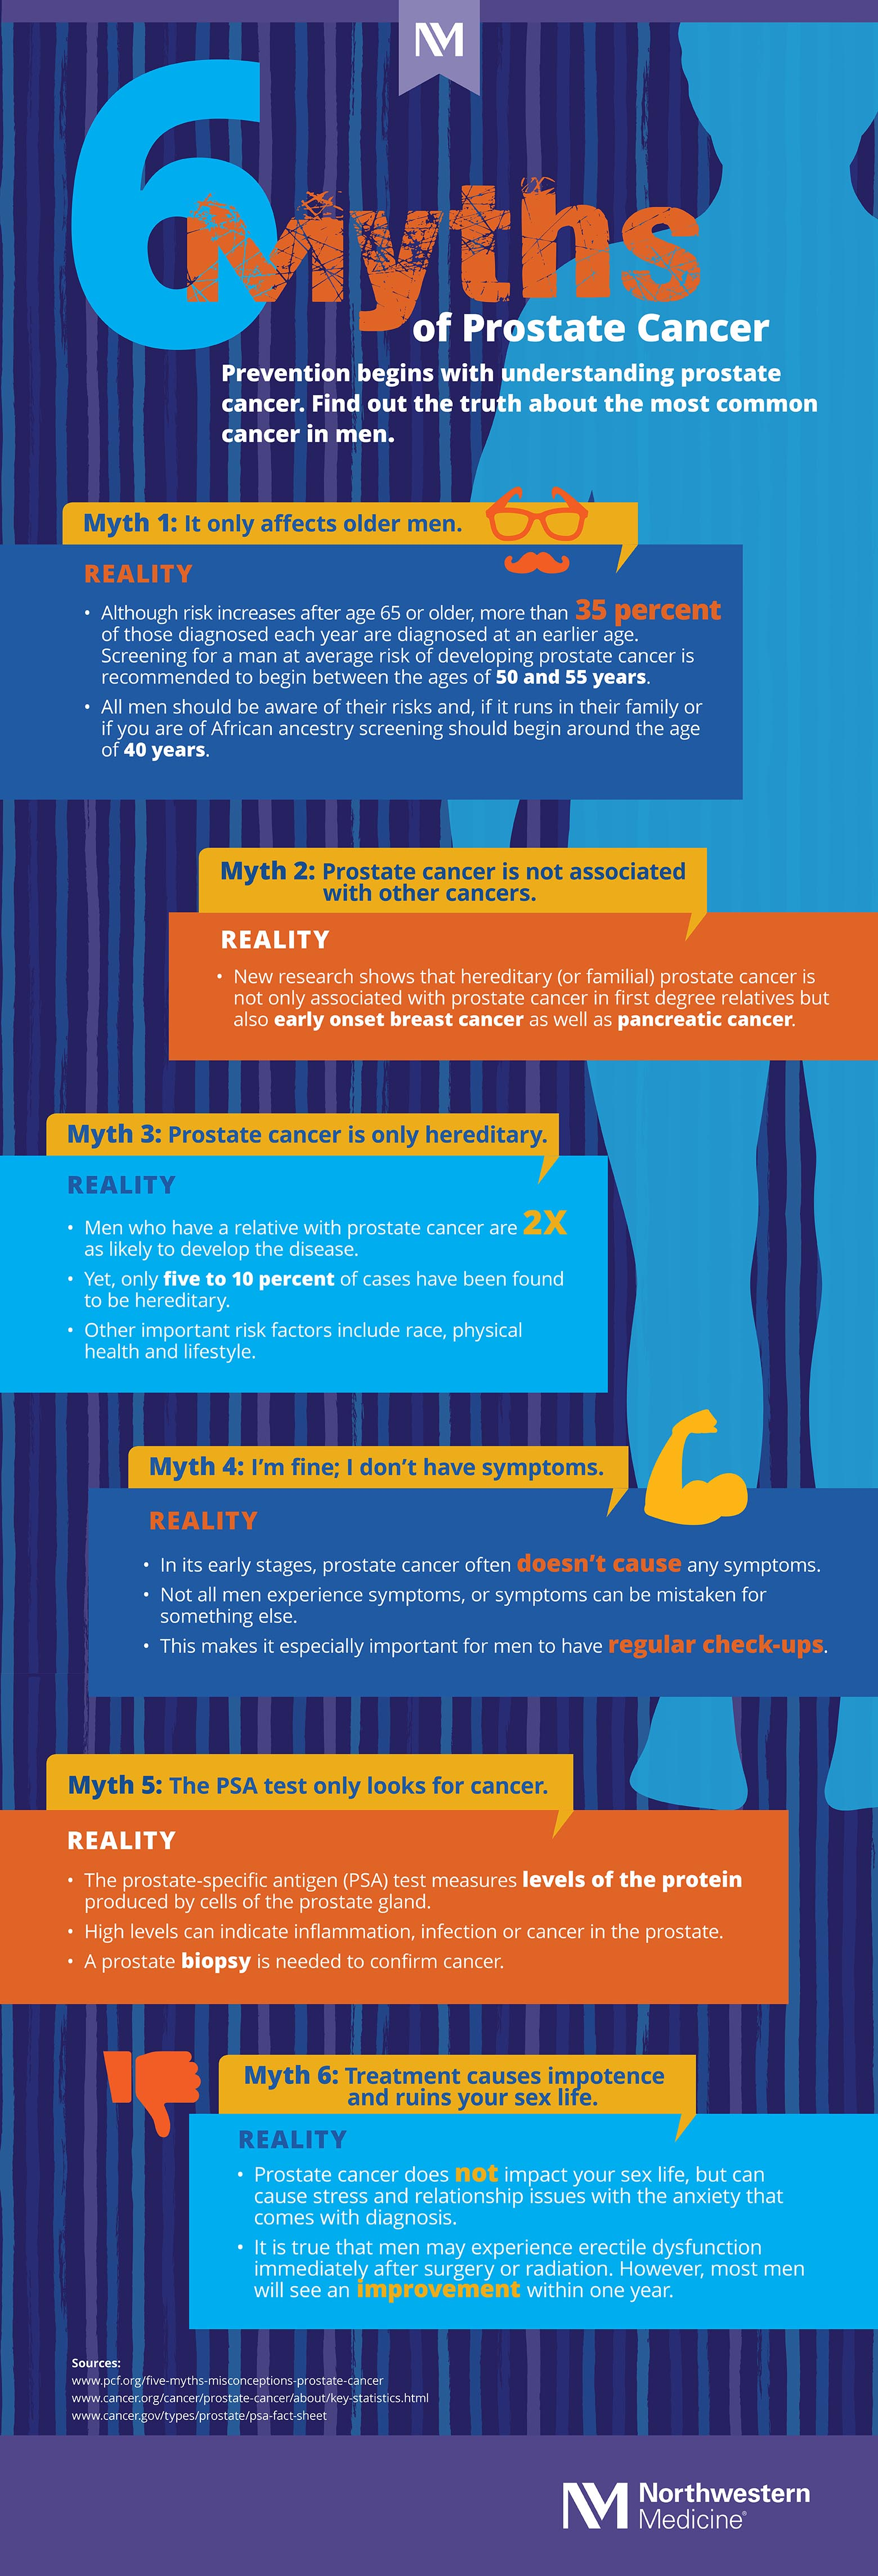 6 Myths of Prostate Cancer (Infographic)